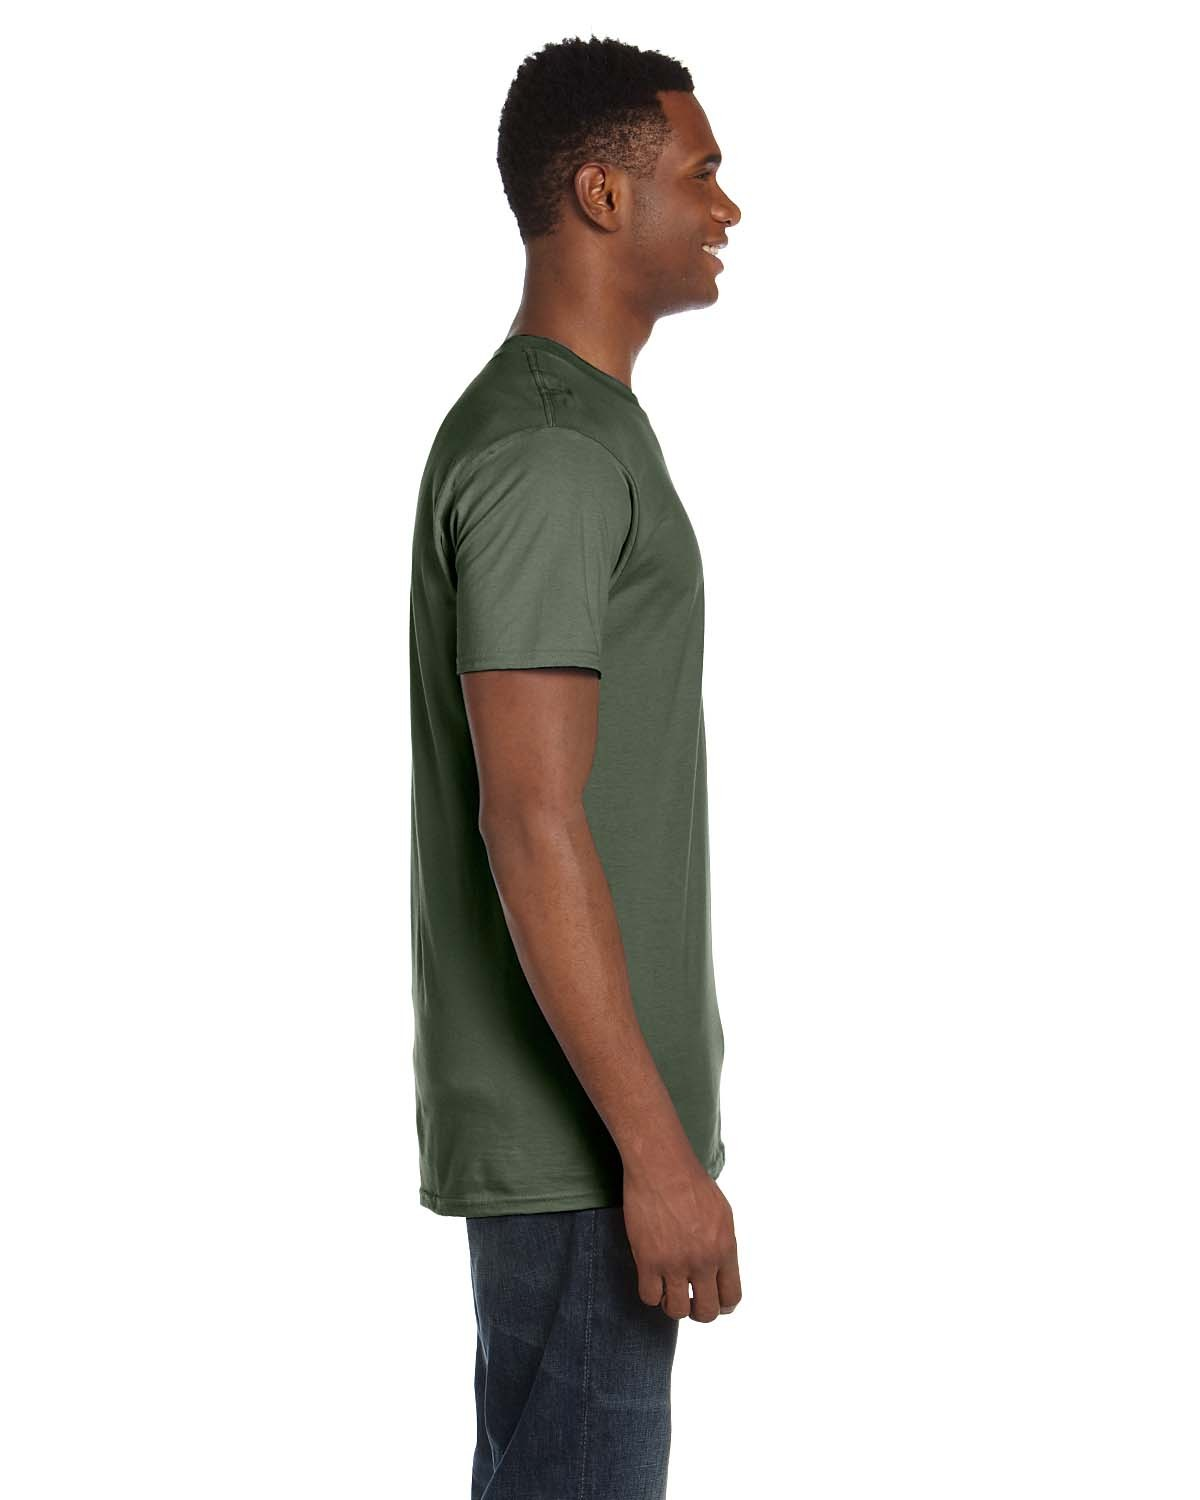 4980 Hanes FATIGUE GREEN